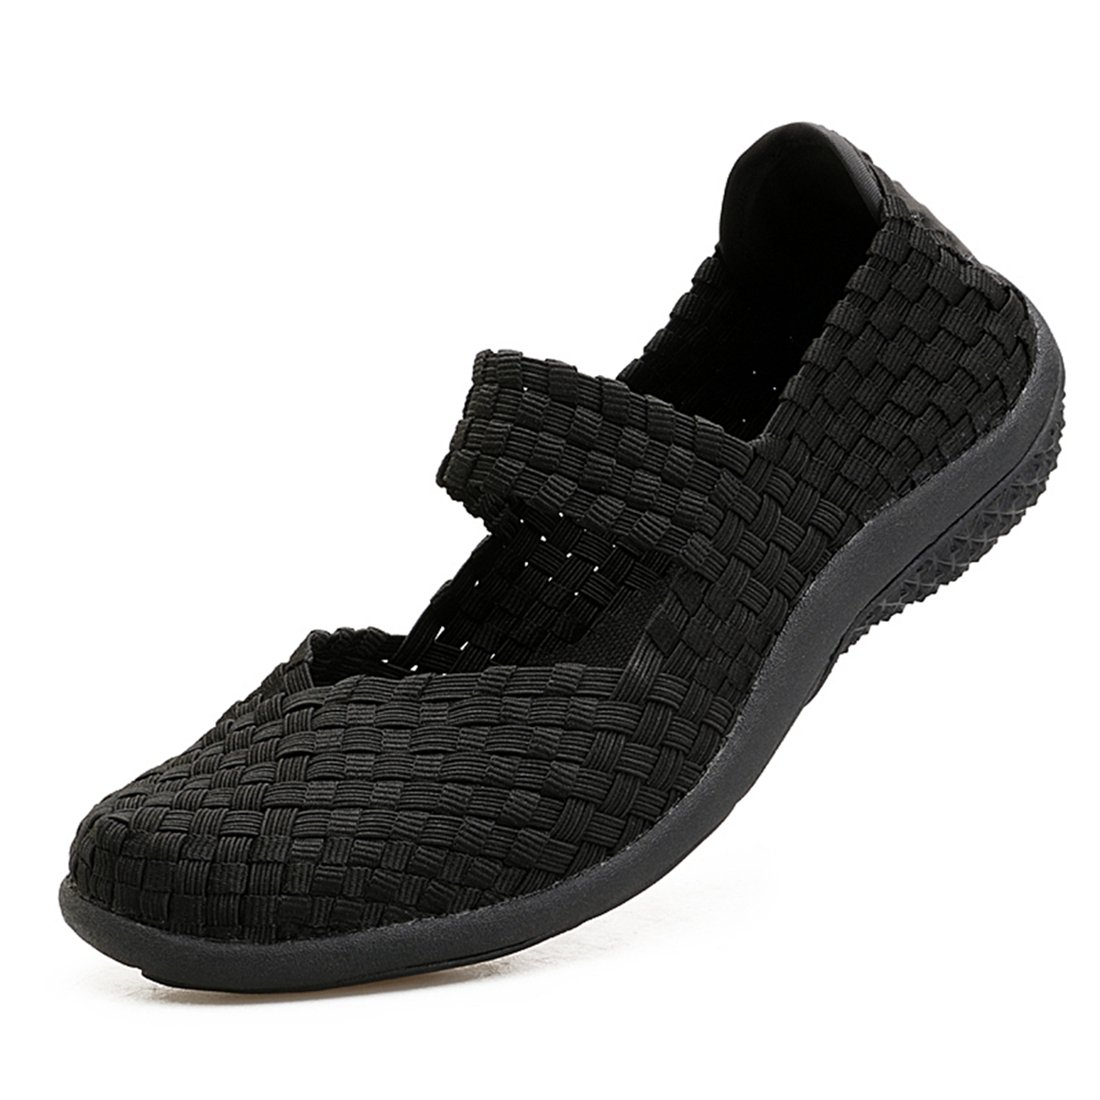 f9641a6217b63 SEVENWELL Women's Woven Stretch Mesh Loafers Fashion Sneakers Breathable  Slip-on Walking Shoes